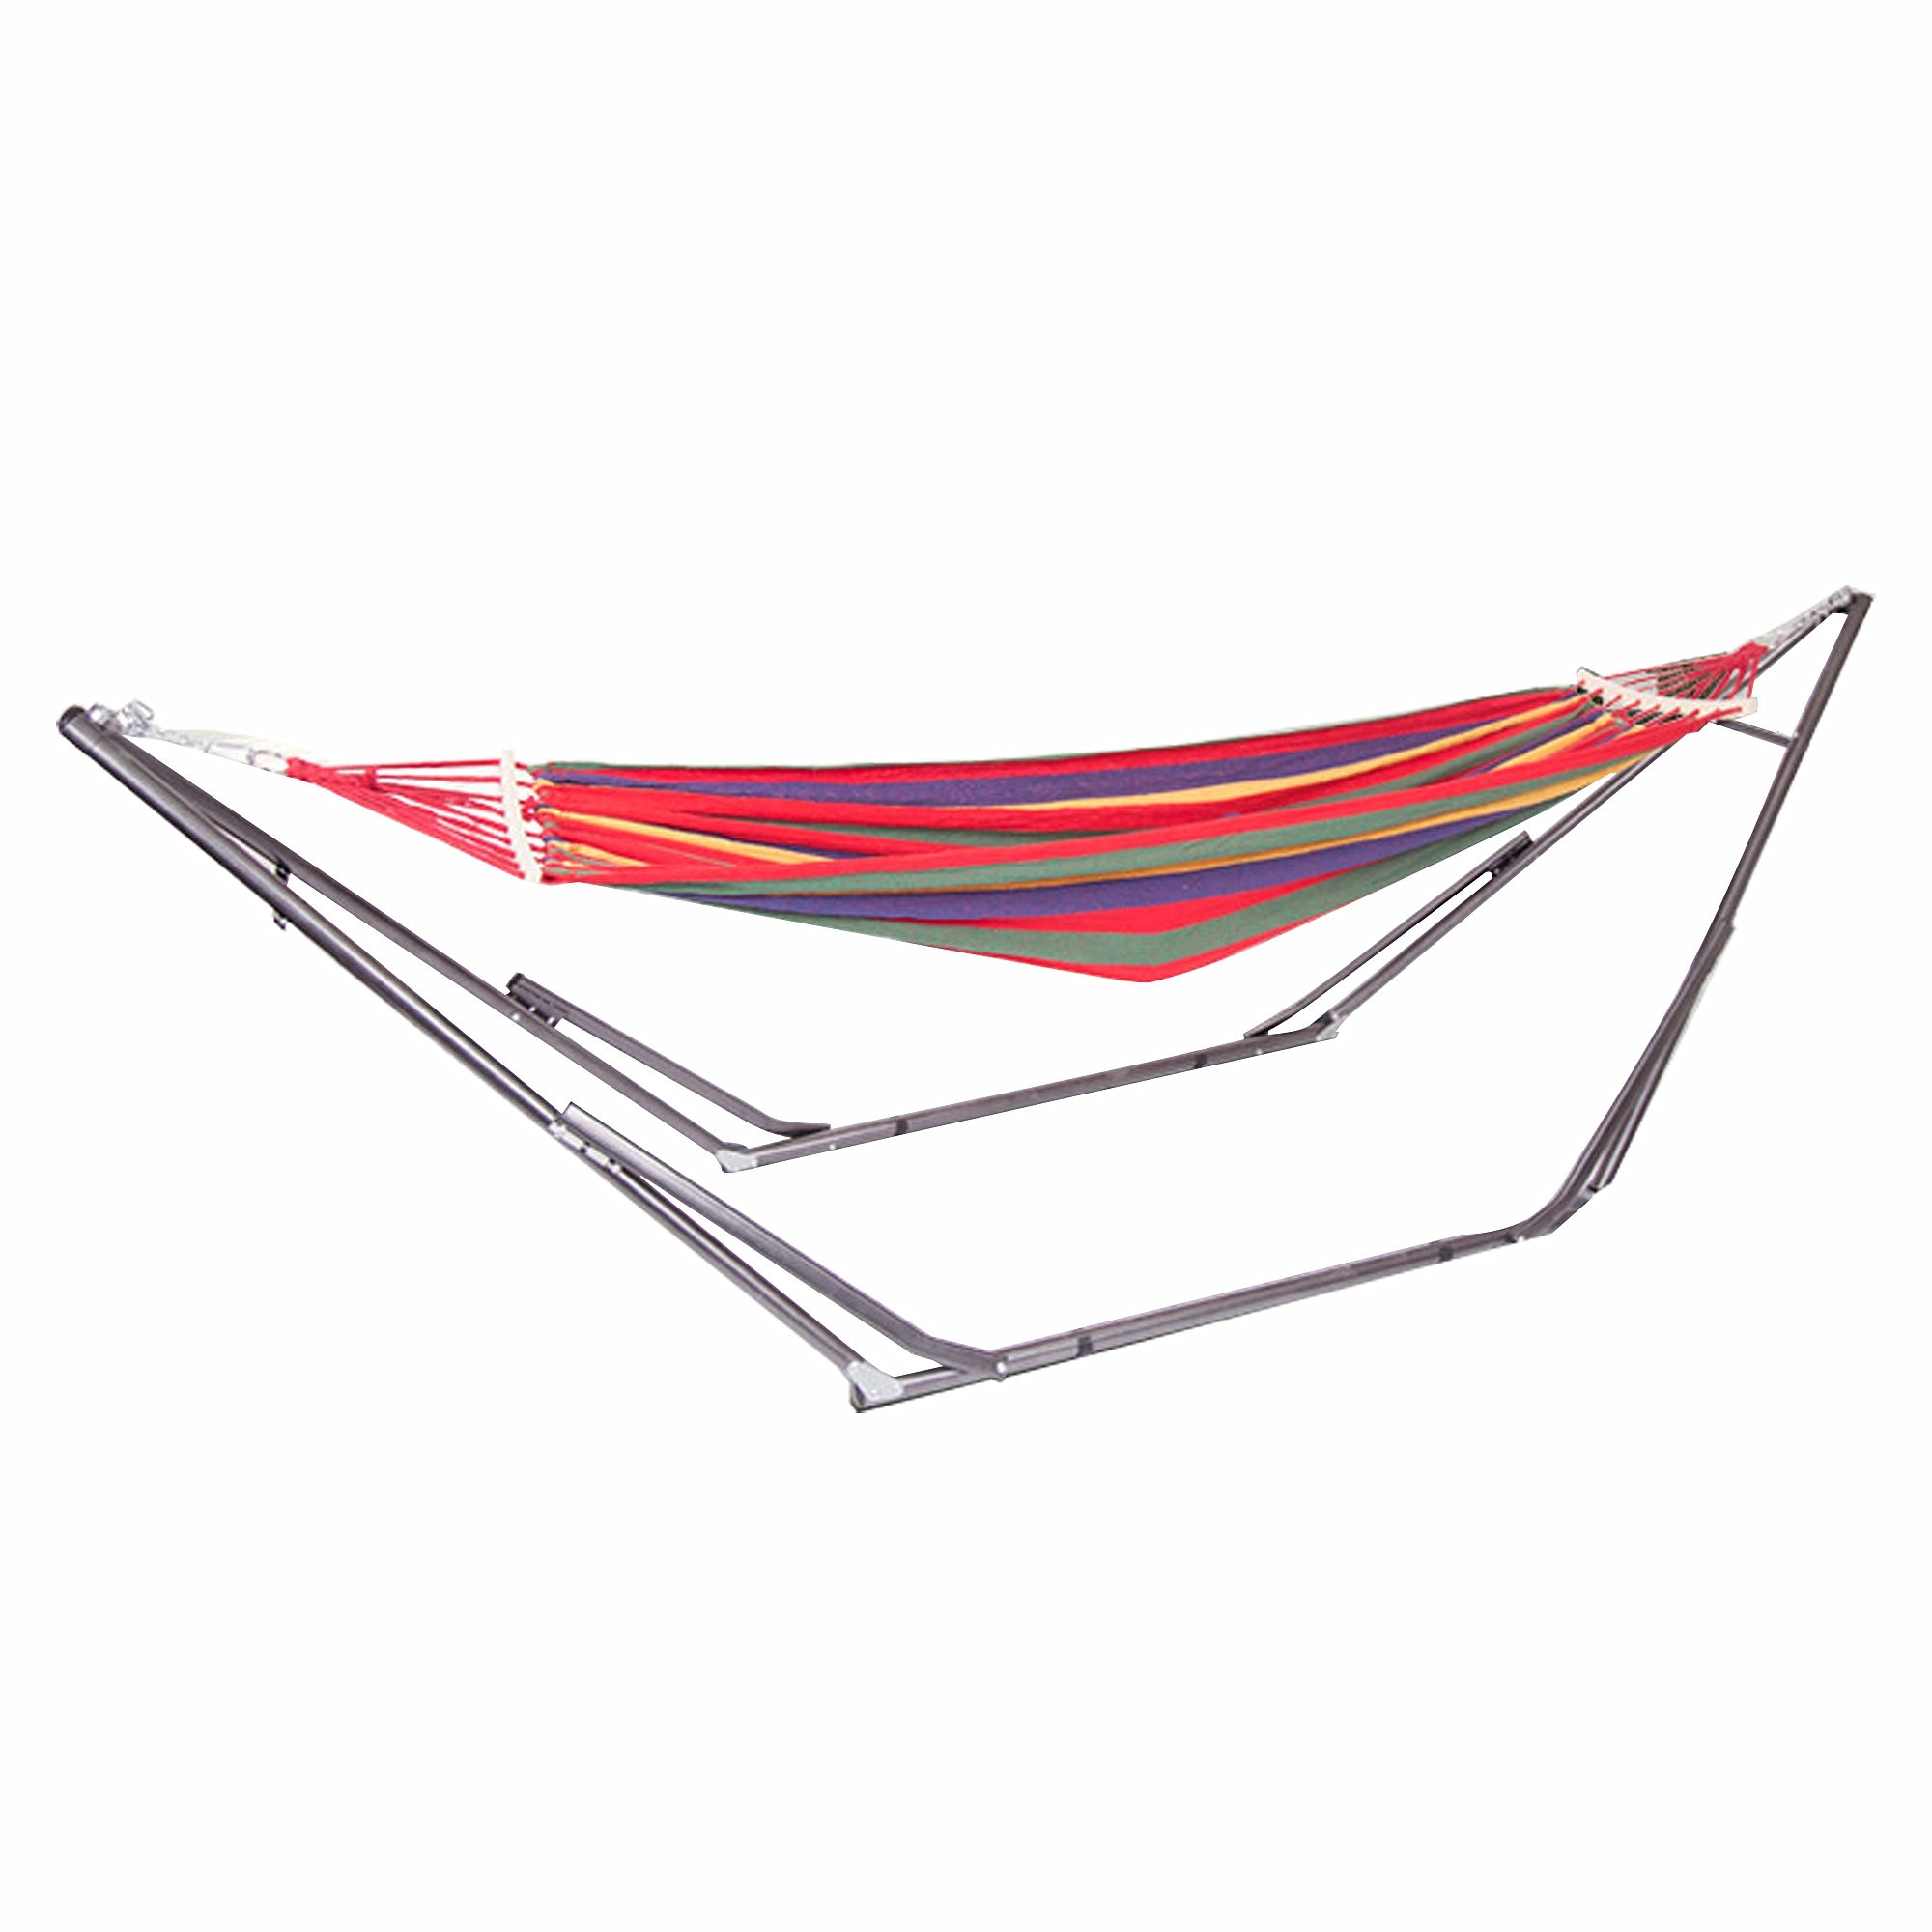 Portable Hammock with Metal Frame